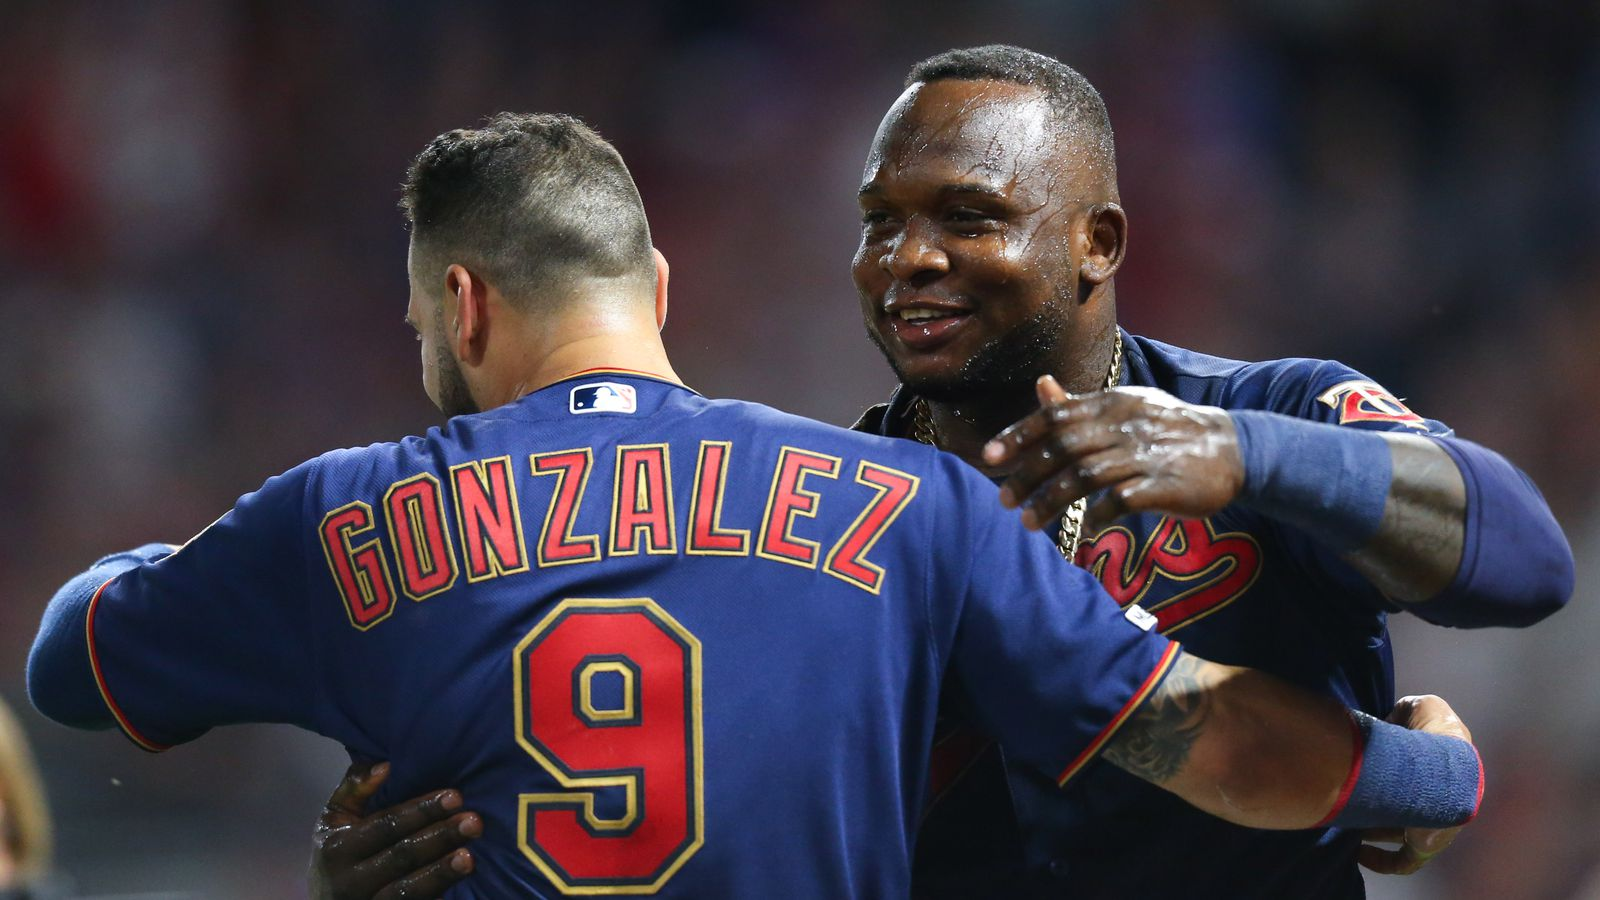 Bombas Squad: What Home Run Records can the Twins break